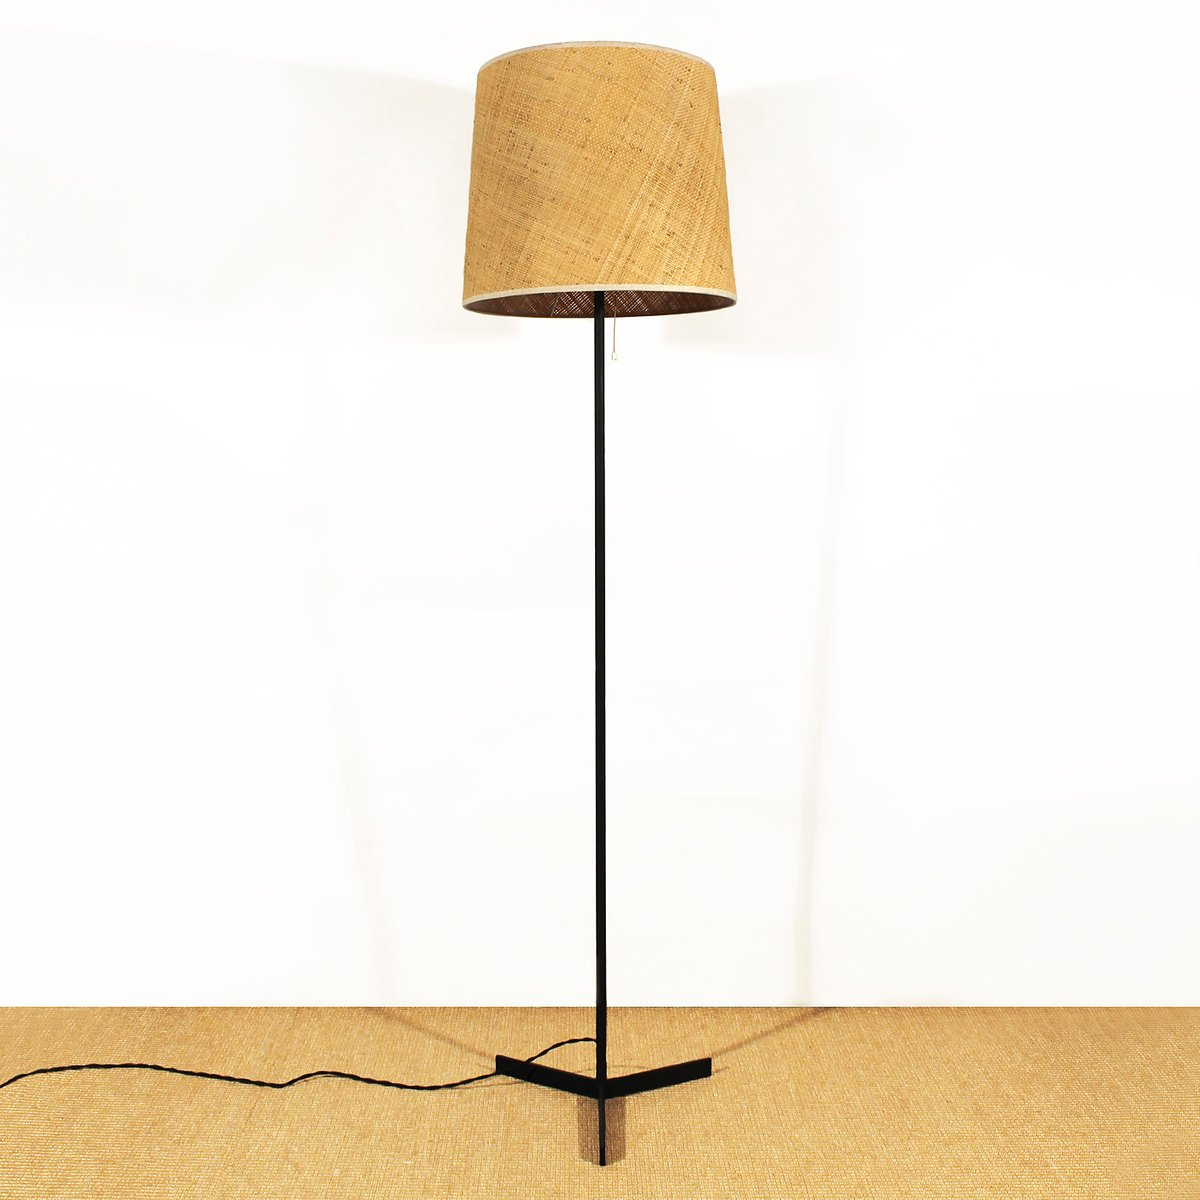 Minimalist Floor Lamp Minimalist Spanish Floor Lamp 1950s For Sale At Pamono